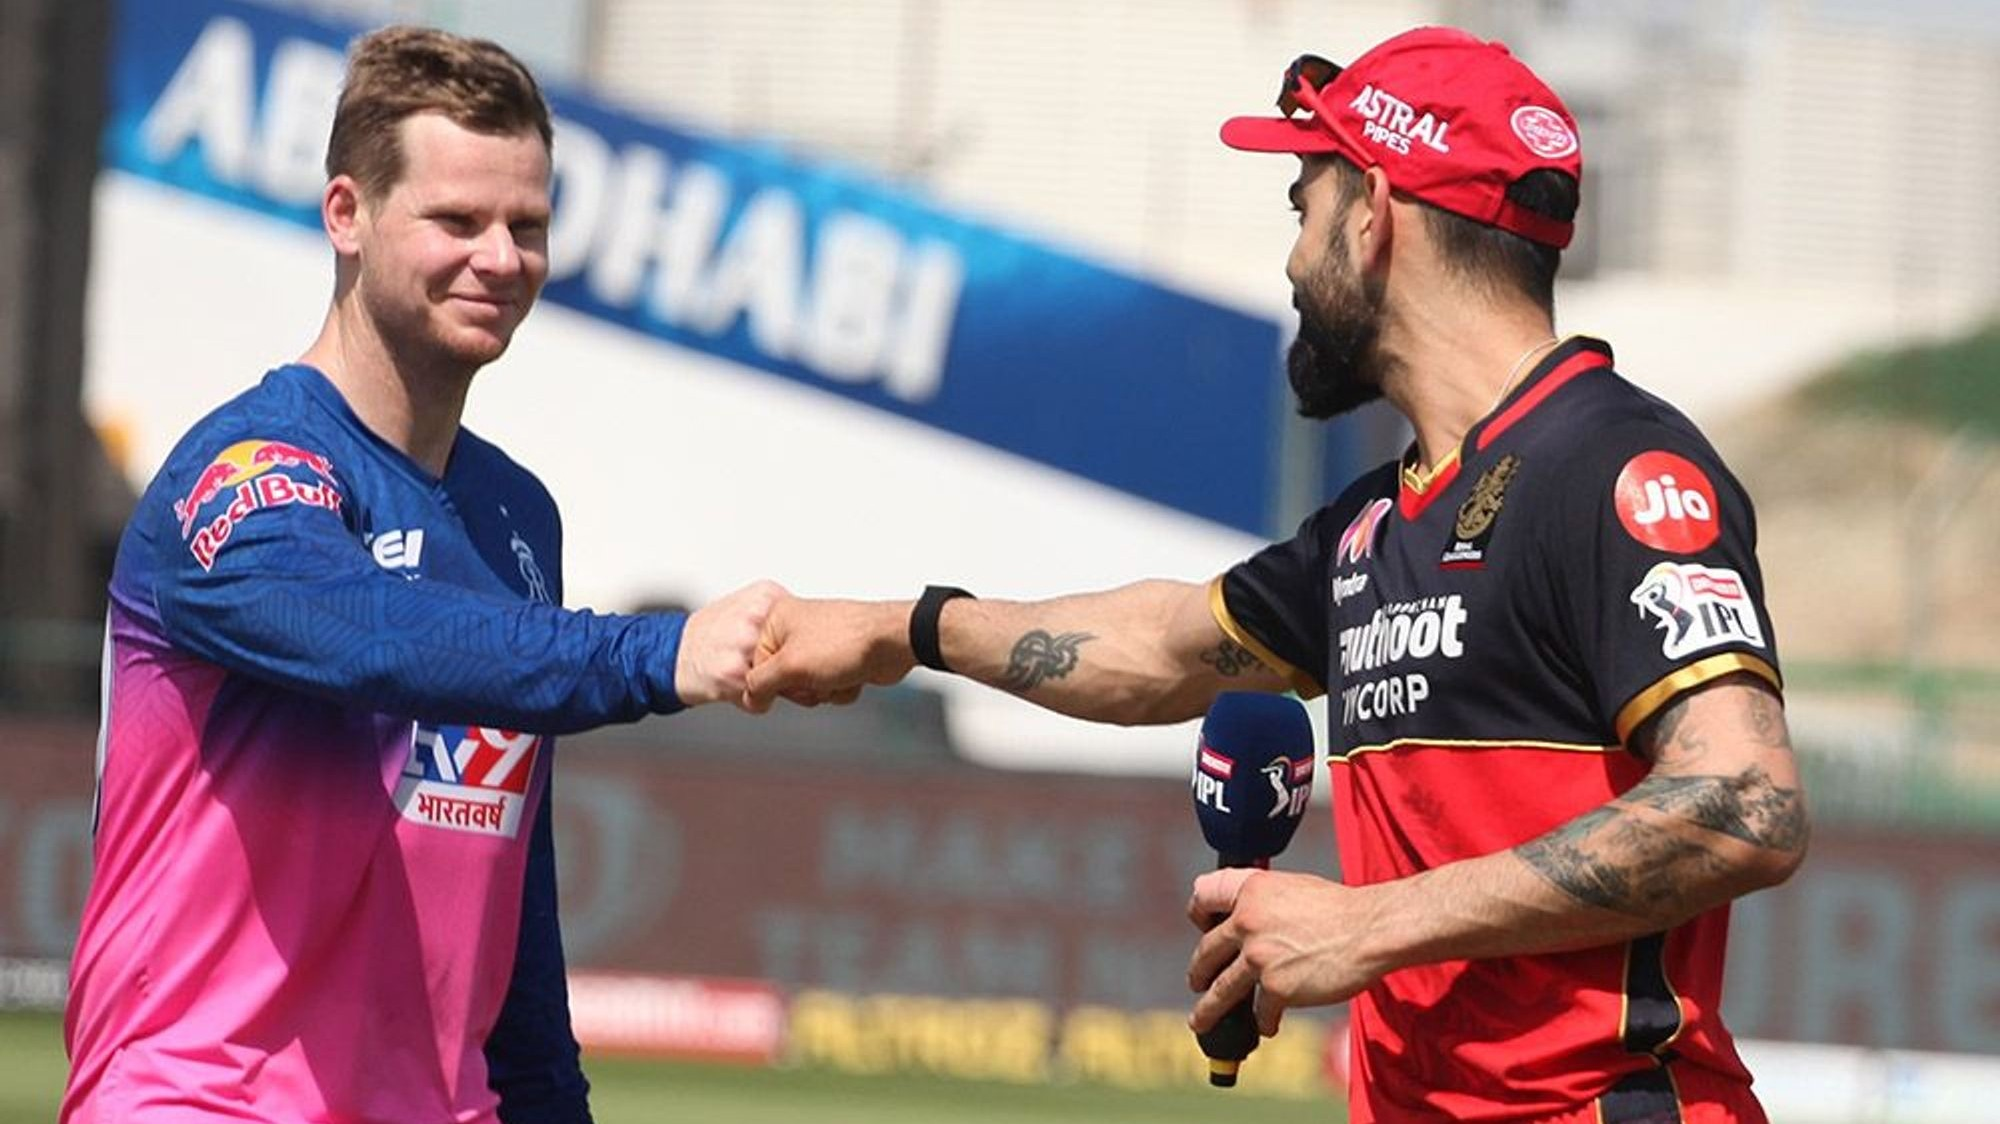 IPL 2020: Match 33, RR v RCB - Statistical Preview of the Match